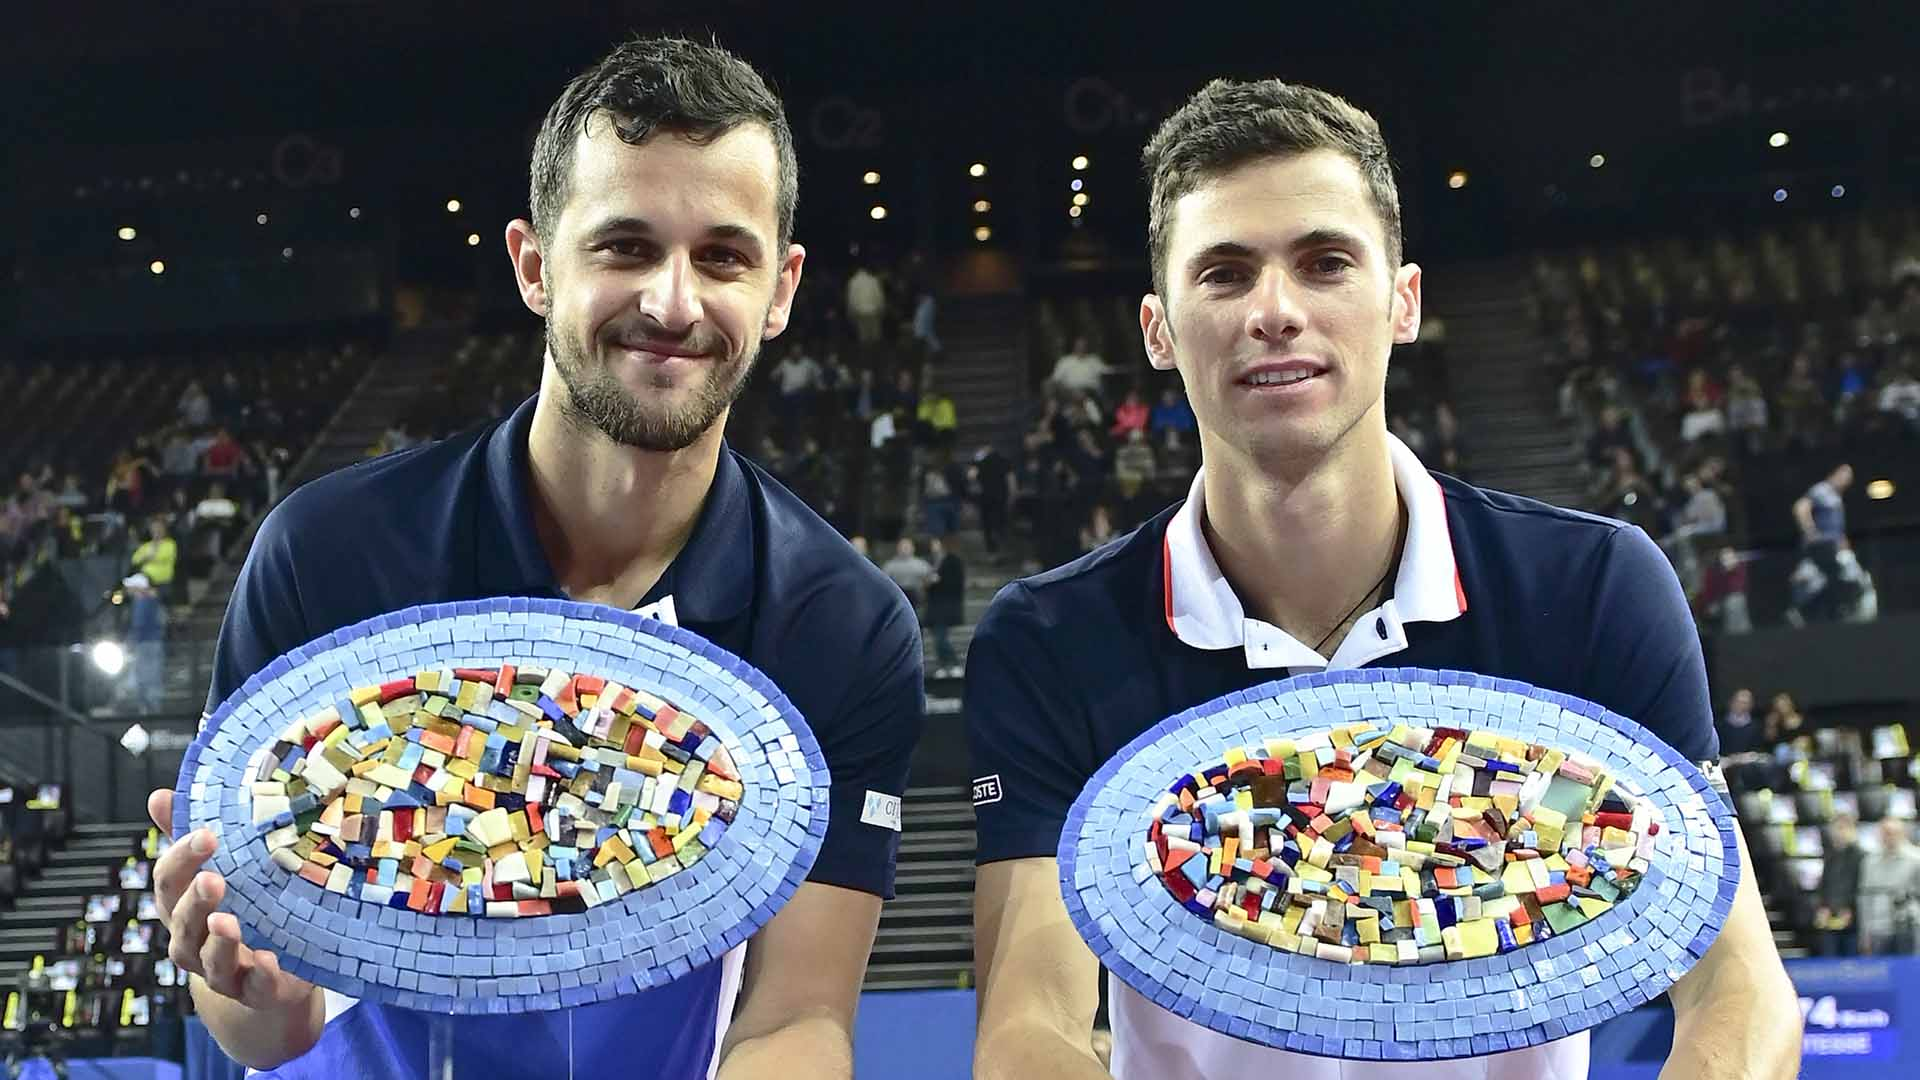 Mate Pavic and Nikola Cacic were appearing for the first time as a team at the Open Sud de France.